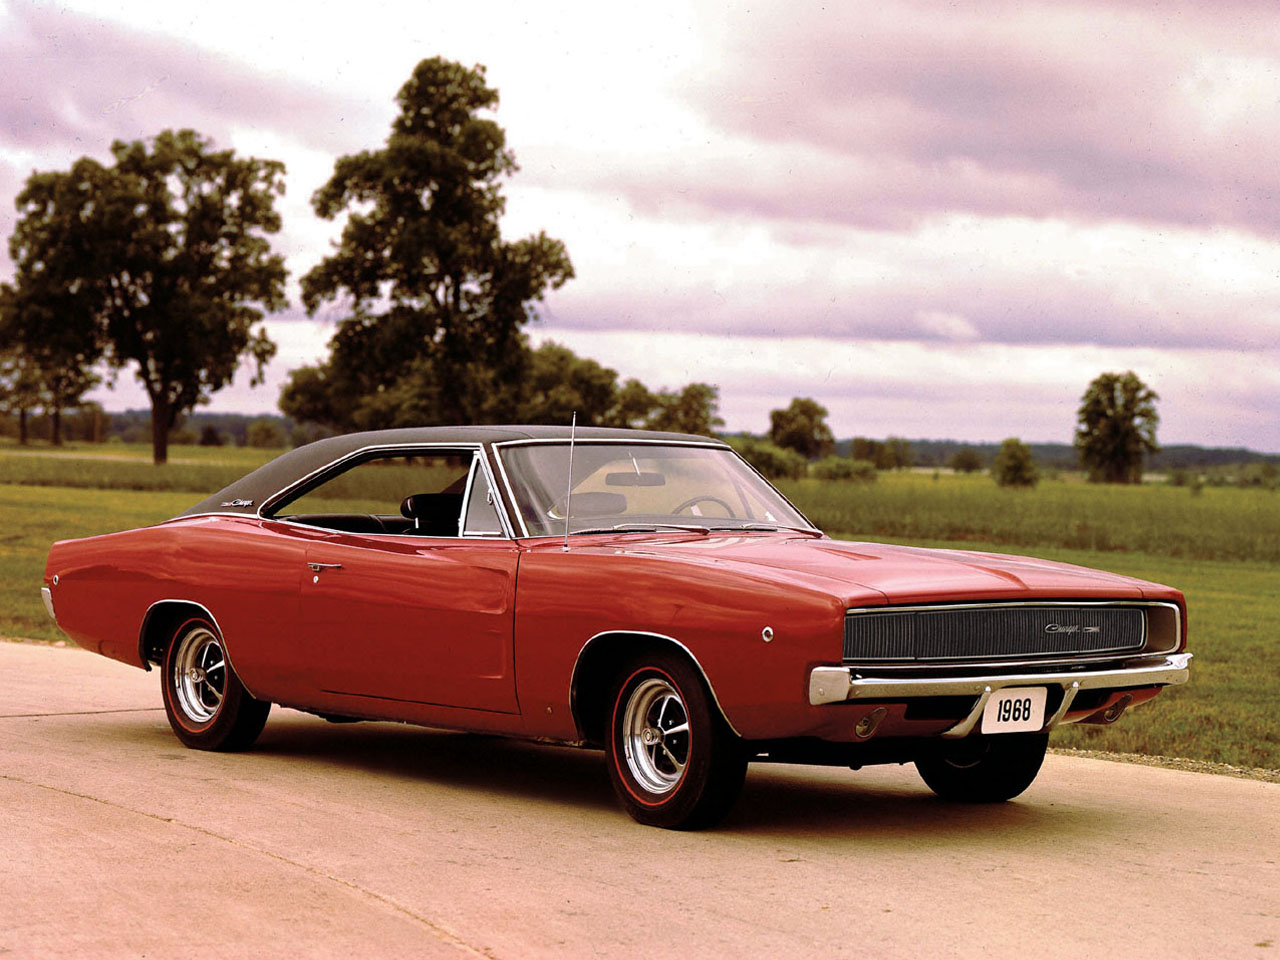 Dodge Charger wallpapers HD Free Wallpaper